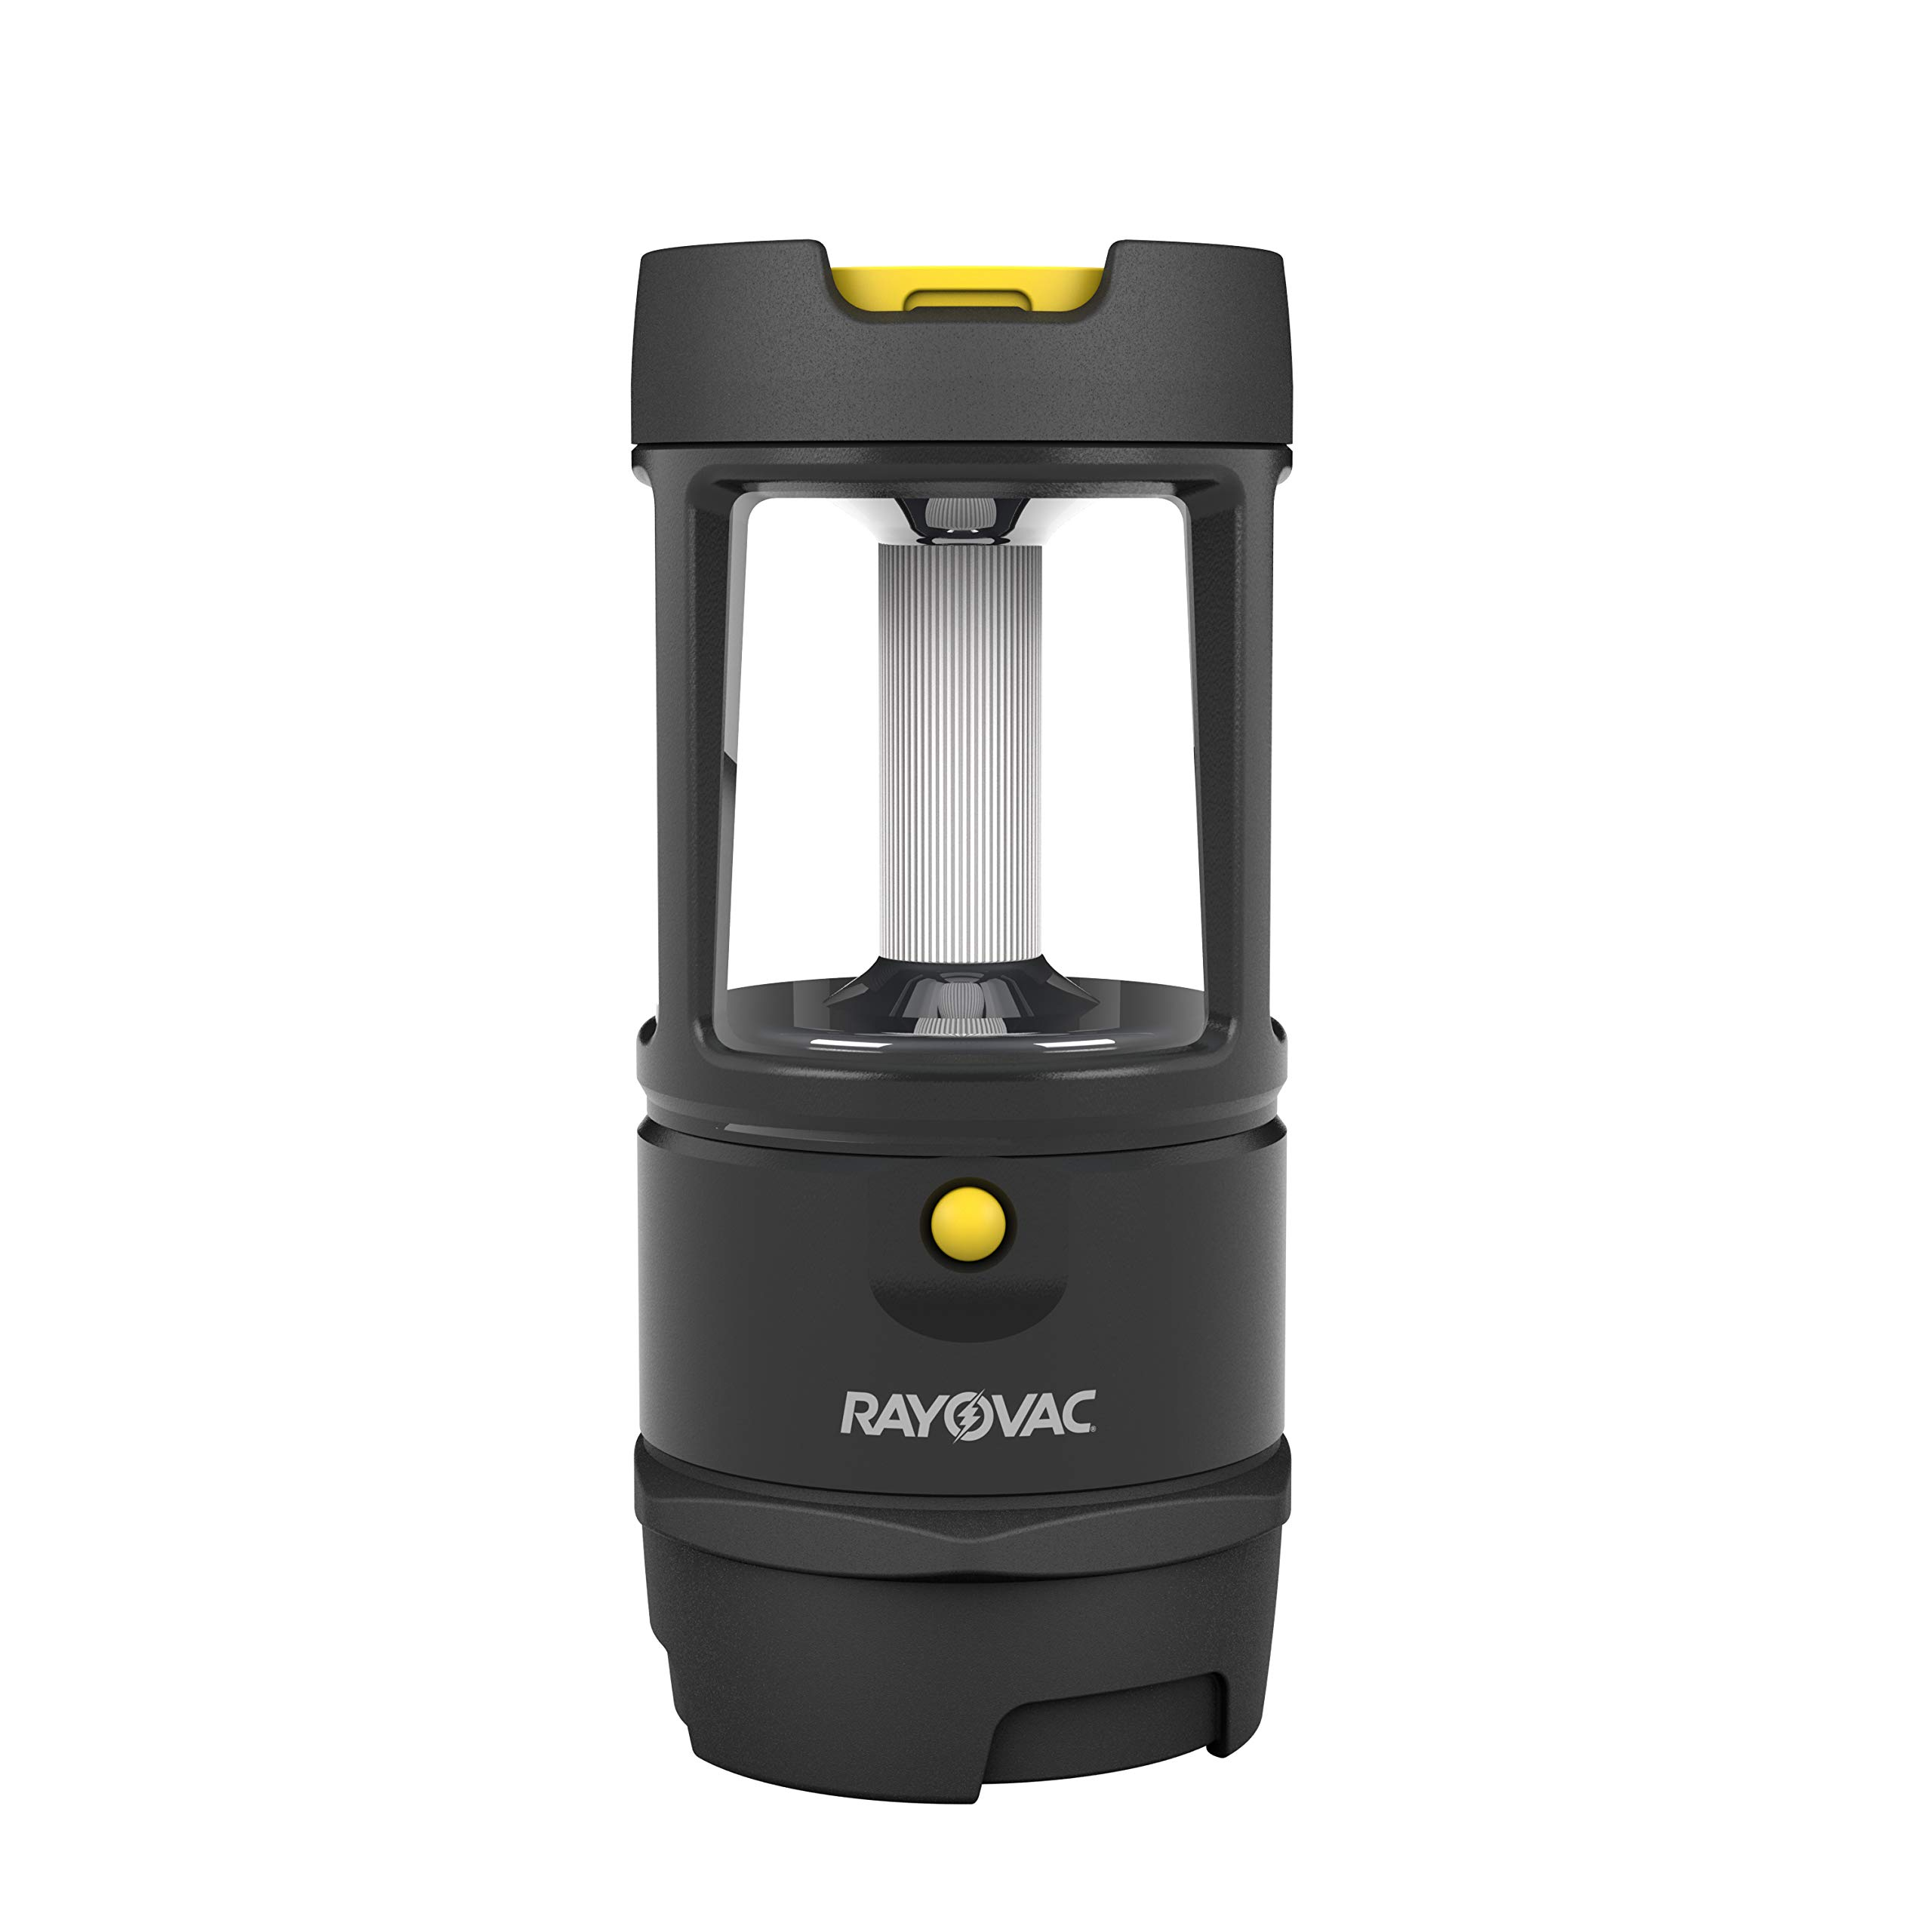 Rayovac Virtually Indestructible LED Camping Lantern Flashlight, 600 Lumens Battery Powered LED Lanterns for Hurricane Supplies, Survival Kit, Camping Accessories, IP67 Waterproof by Rayovac